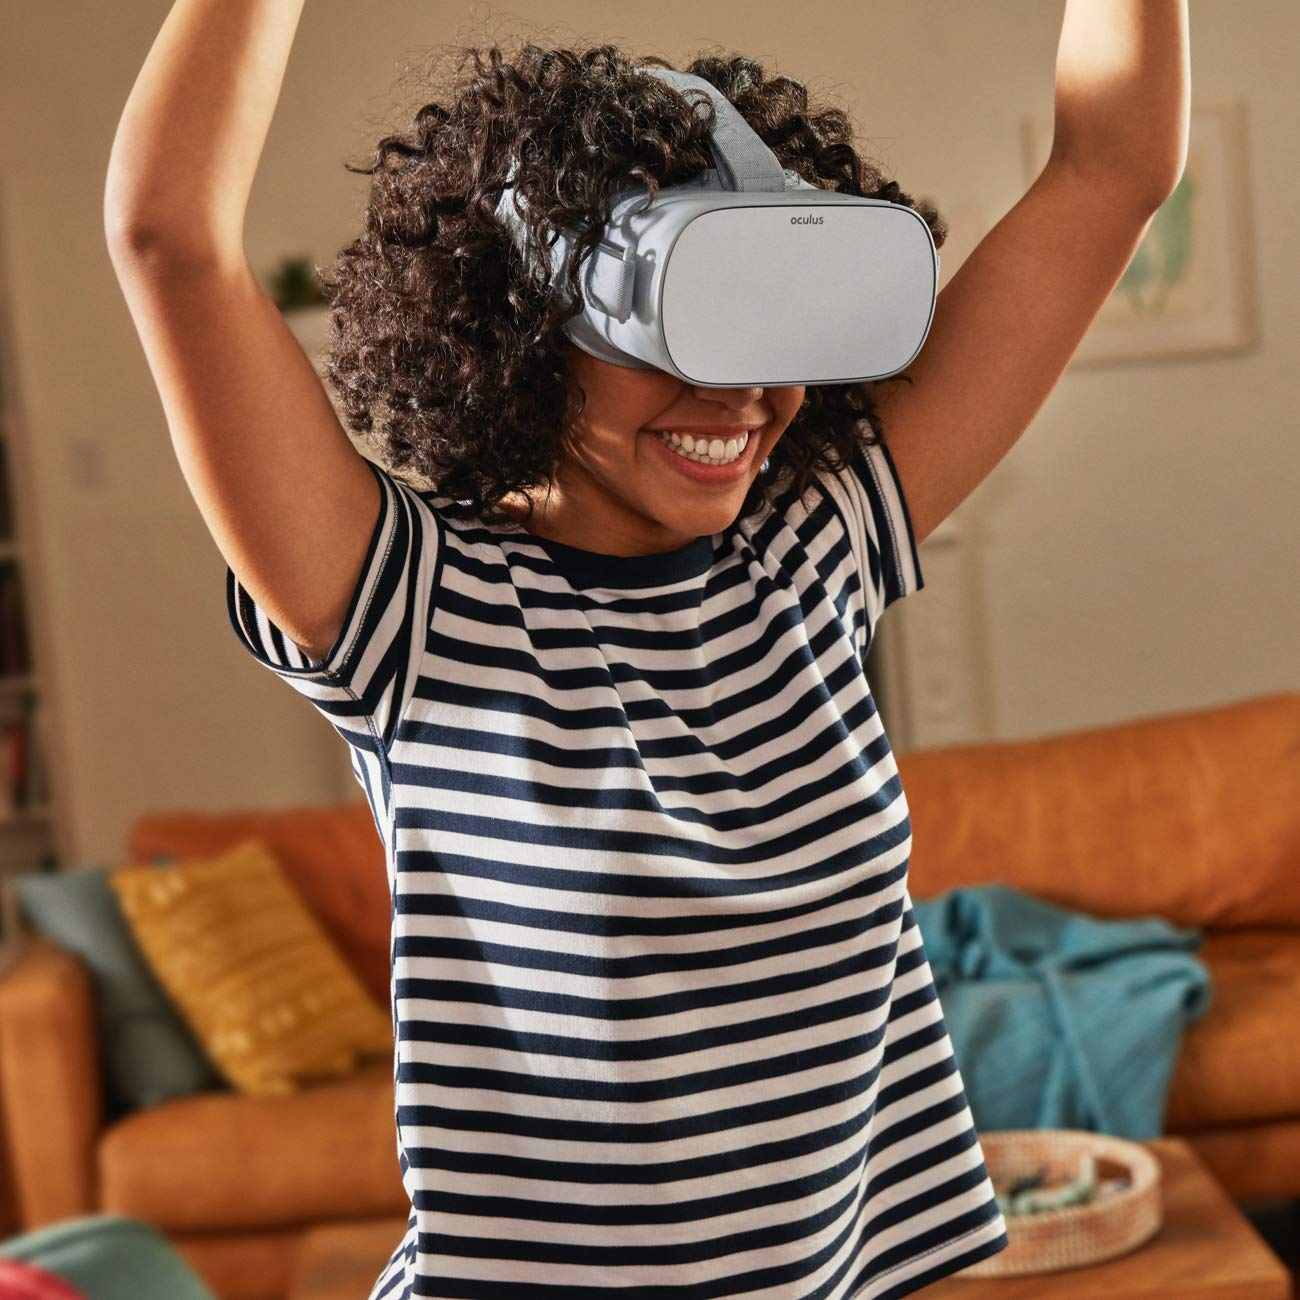 Oculus Go Standalone Virtual Reality Headset  - 32GB by Oculus (Image #8)